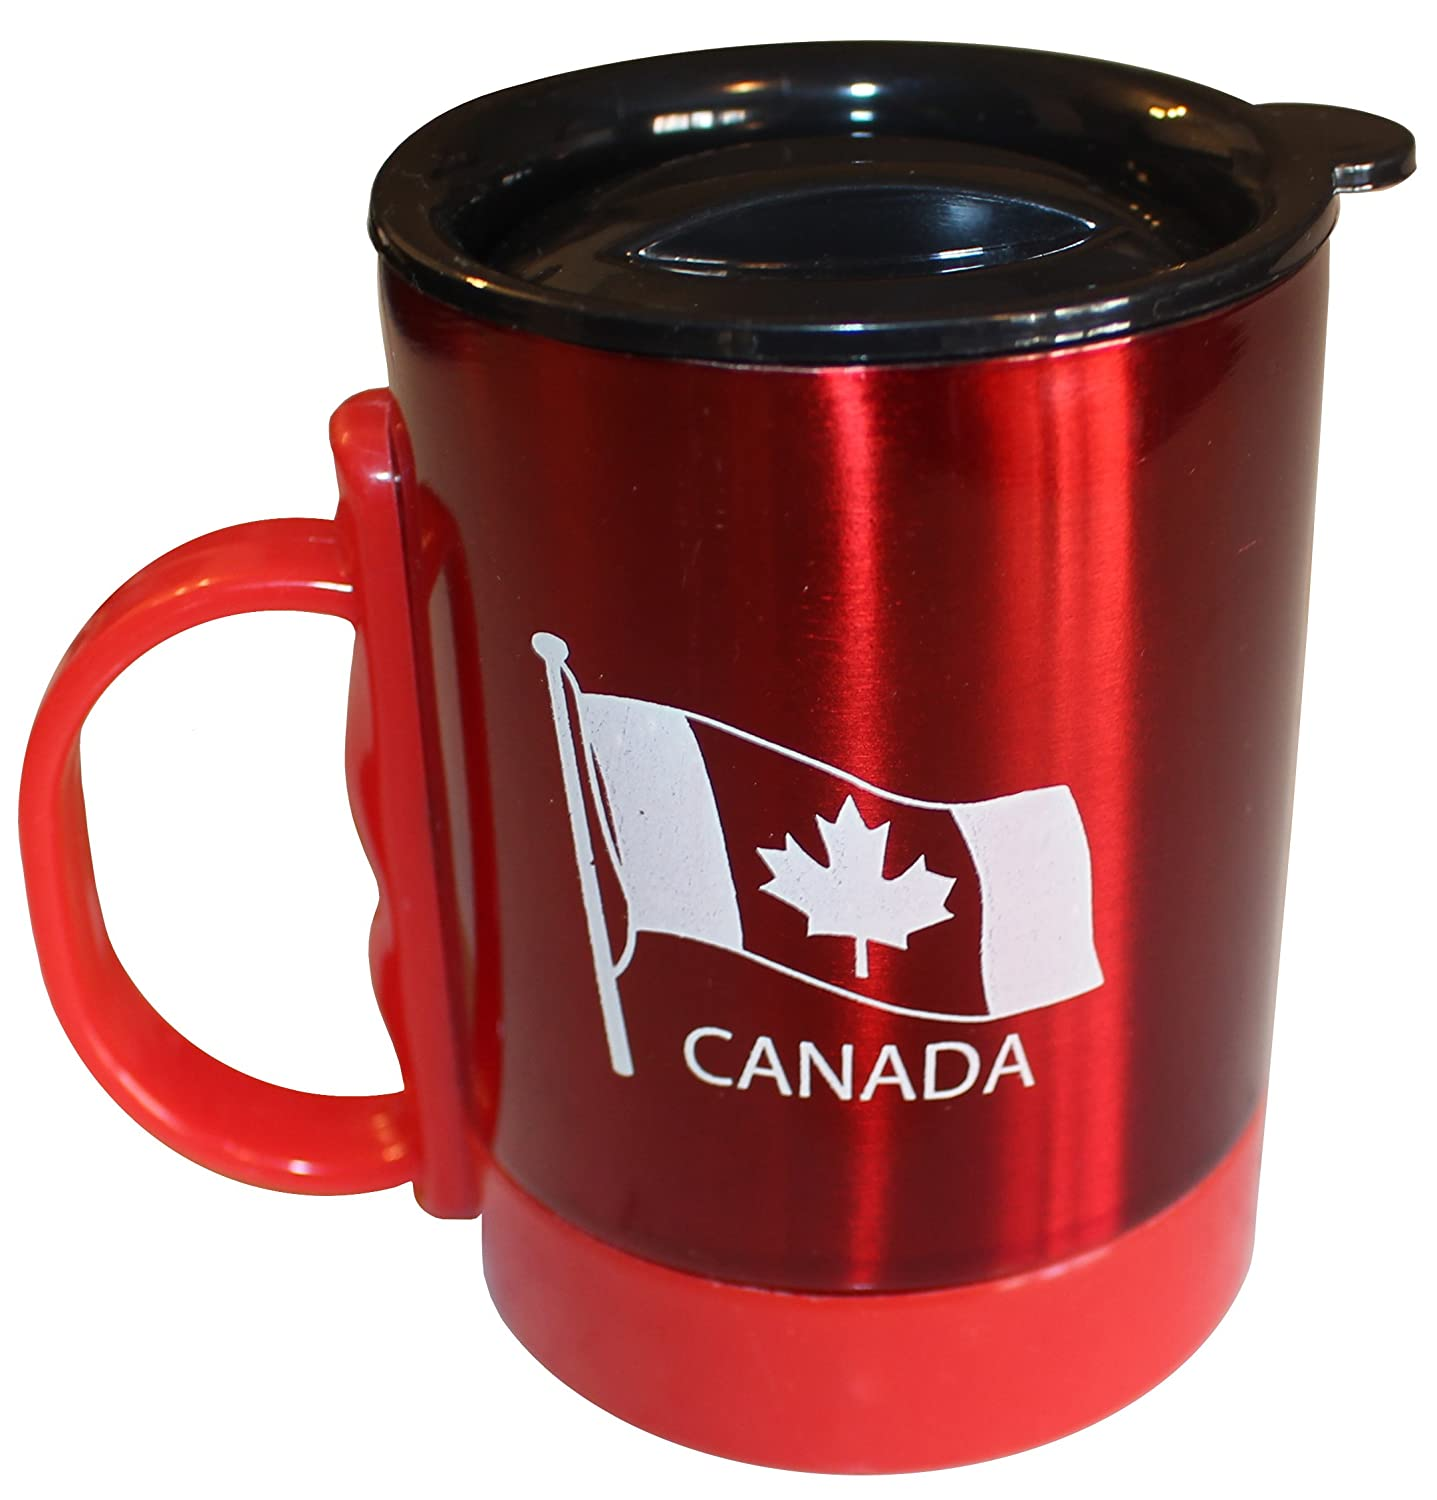 Stainless Canada Camping Souvenir1 Mug With Steel Travel Lid 35jLScq4RA